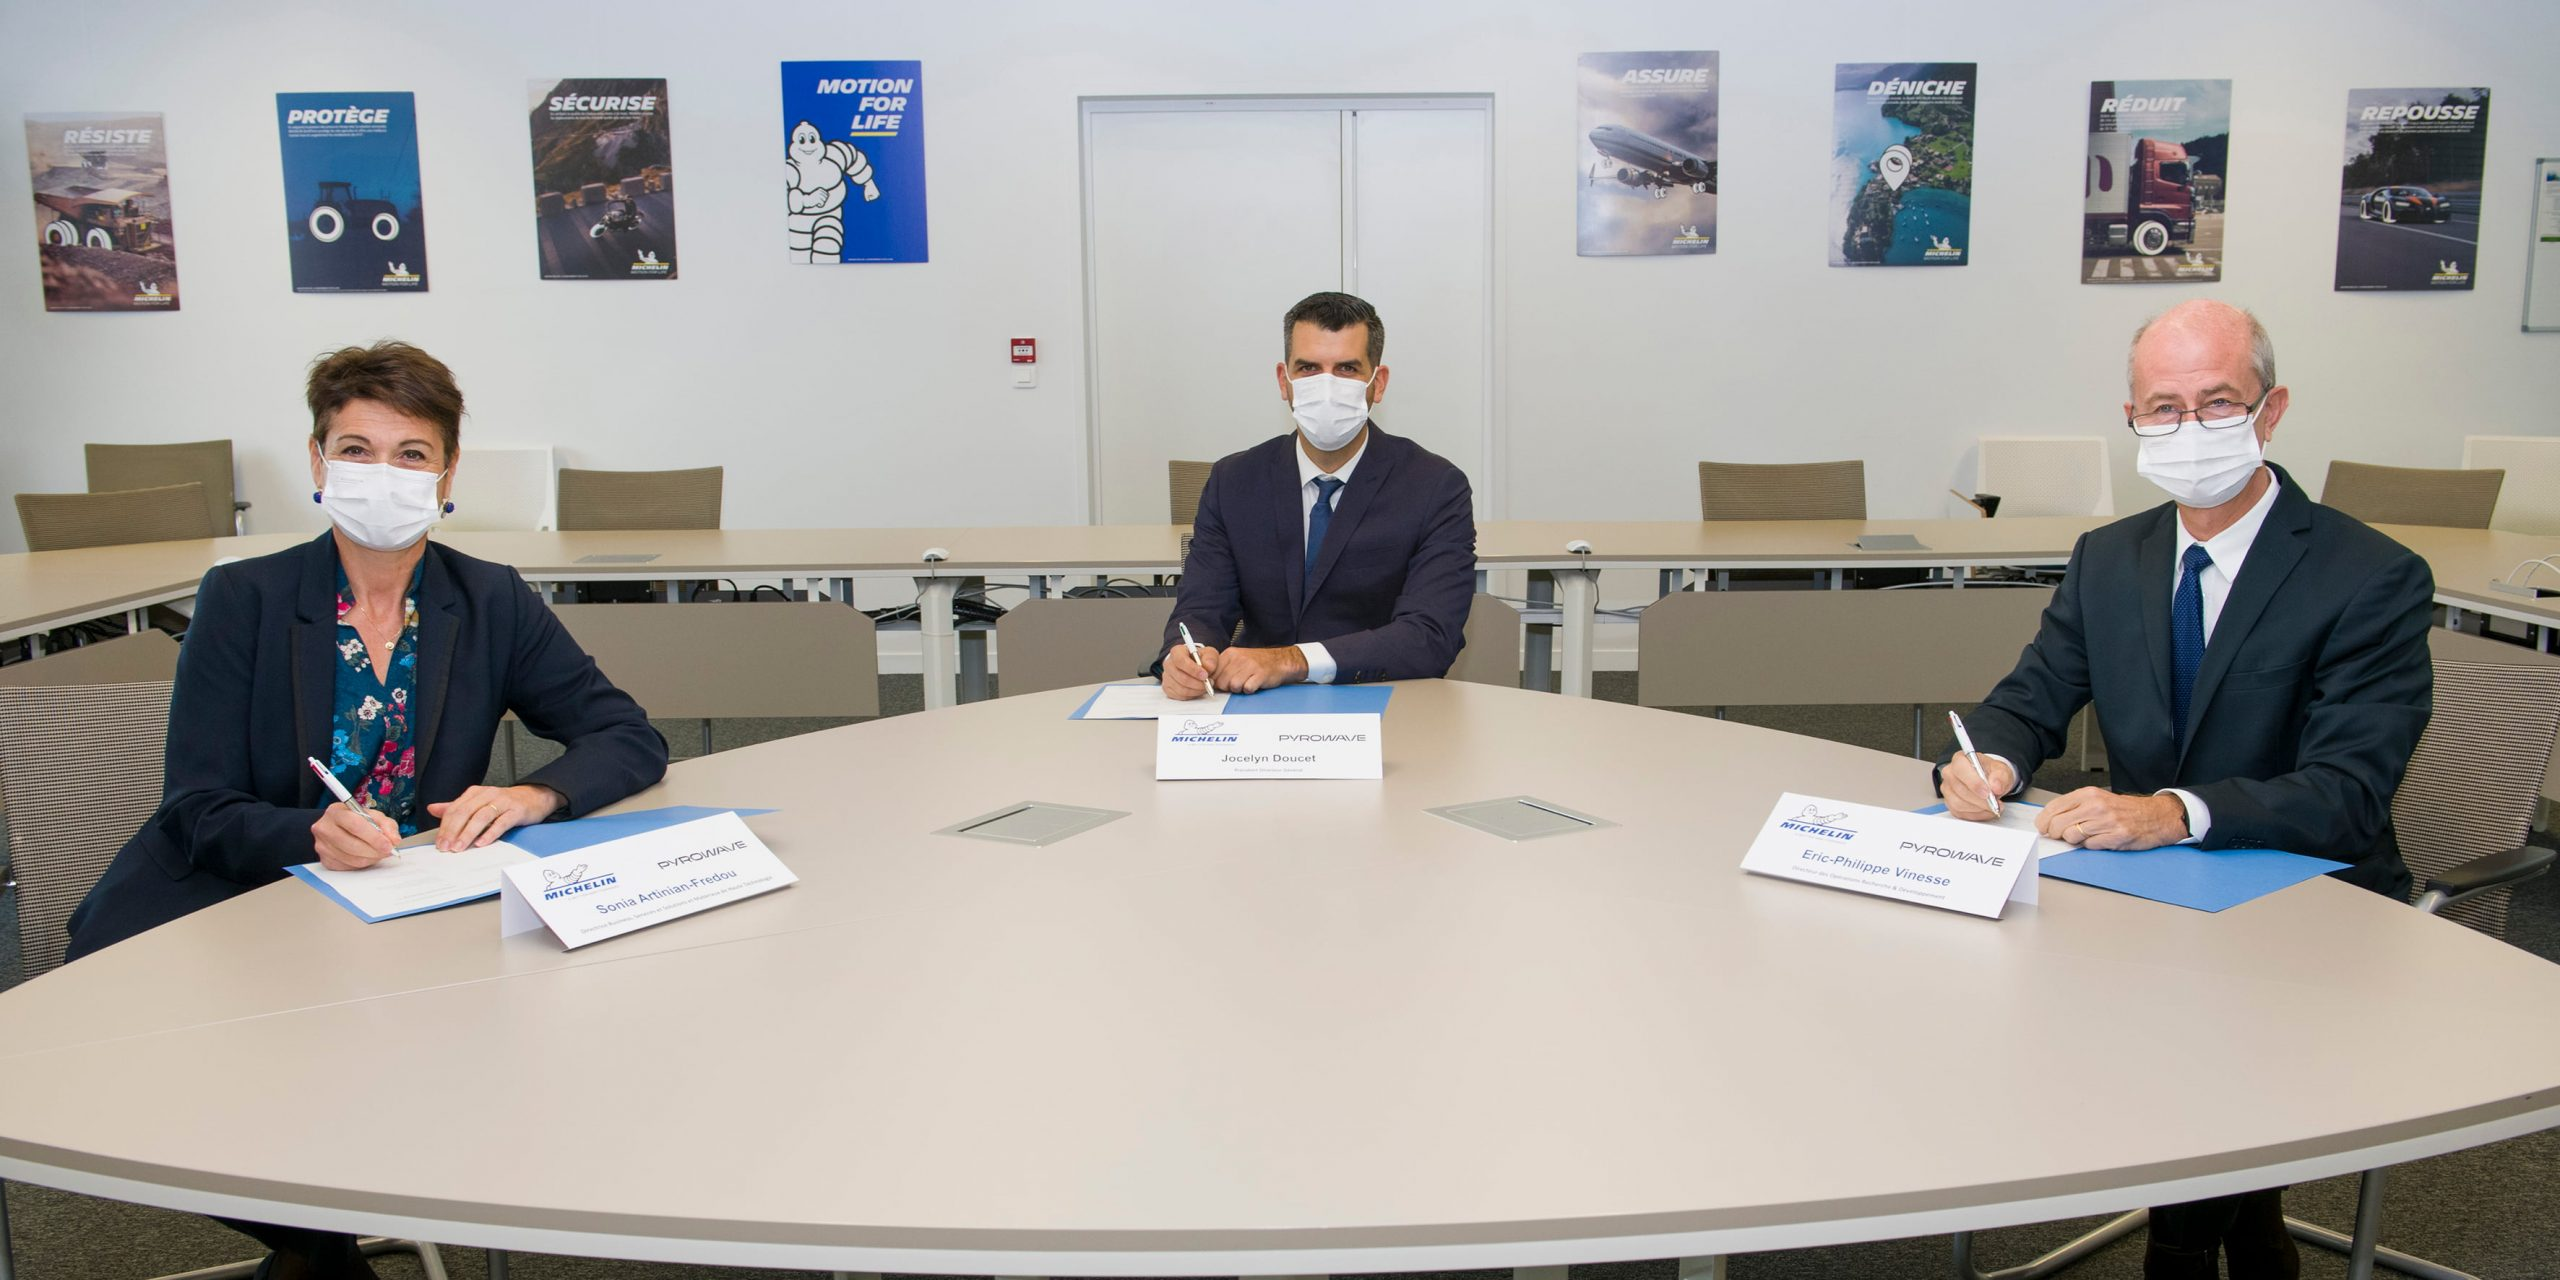 Michelin and Pyrowave join forces to industrialize an innovative plastic waste recycling technology